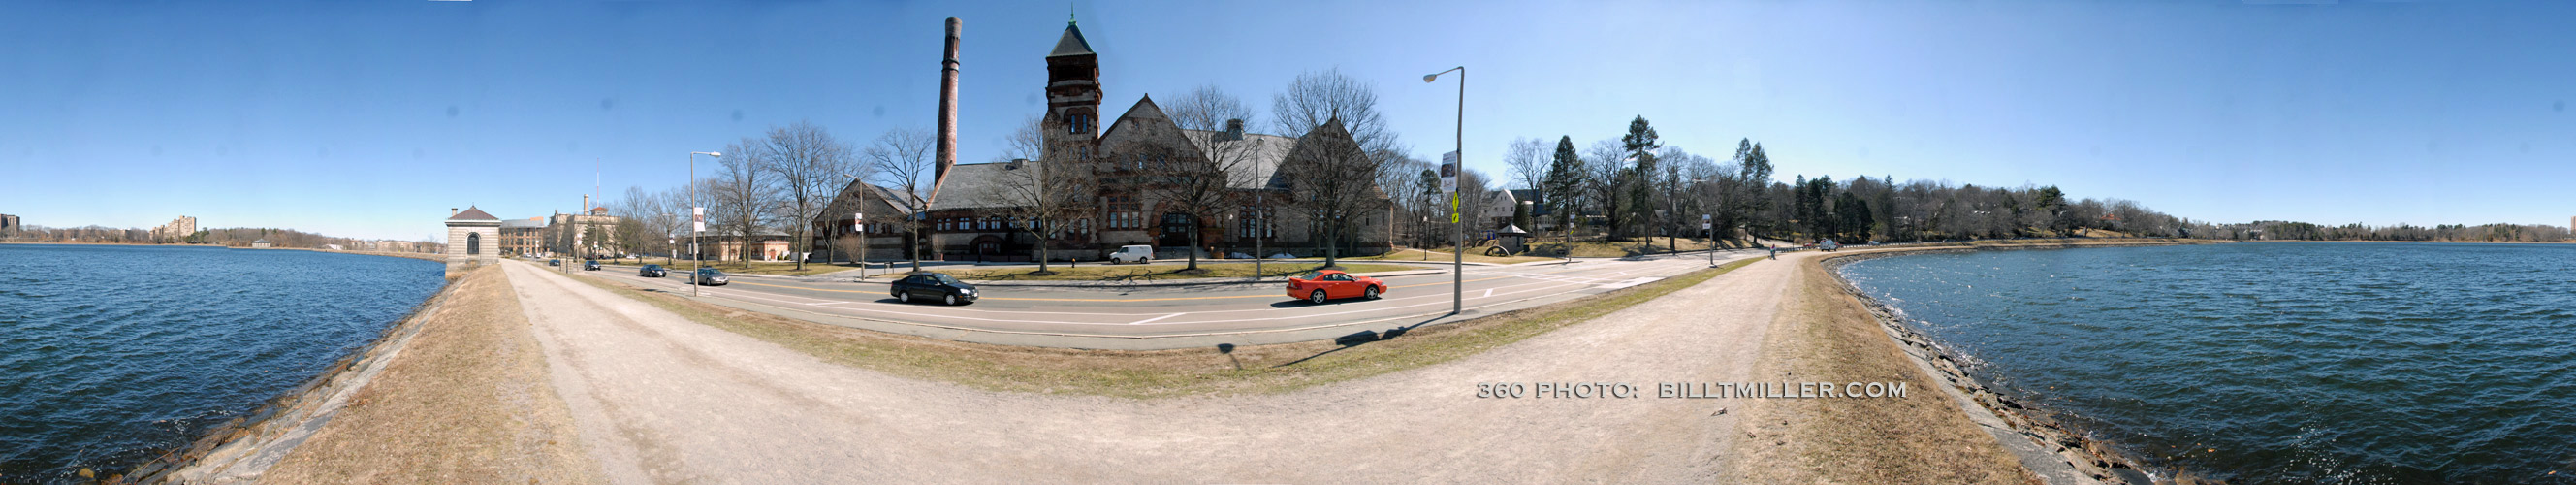 360 Panoramic of WATERWORKS by Bill T Miller